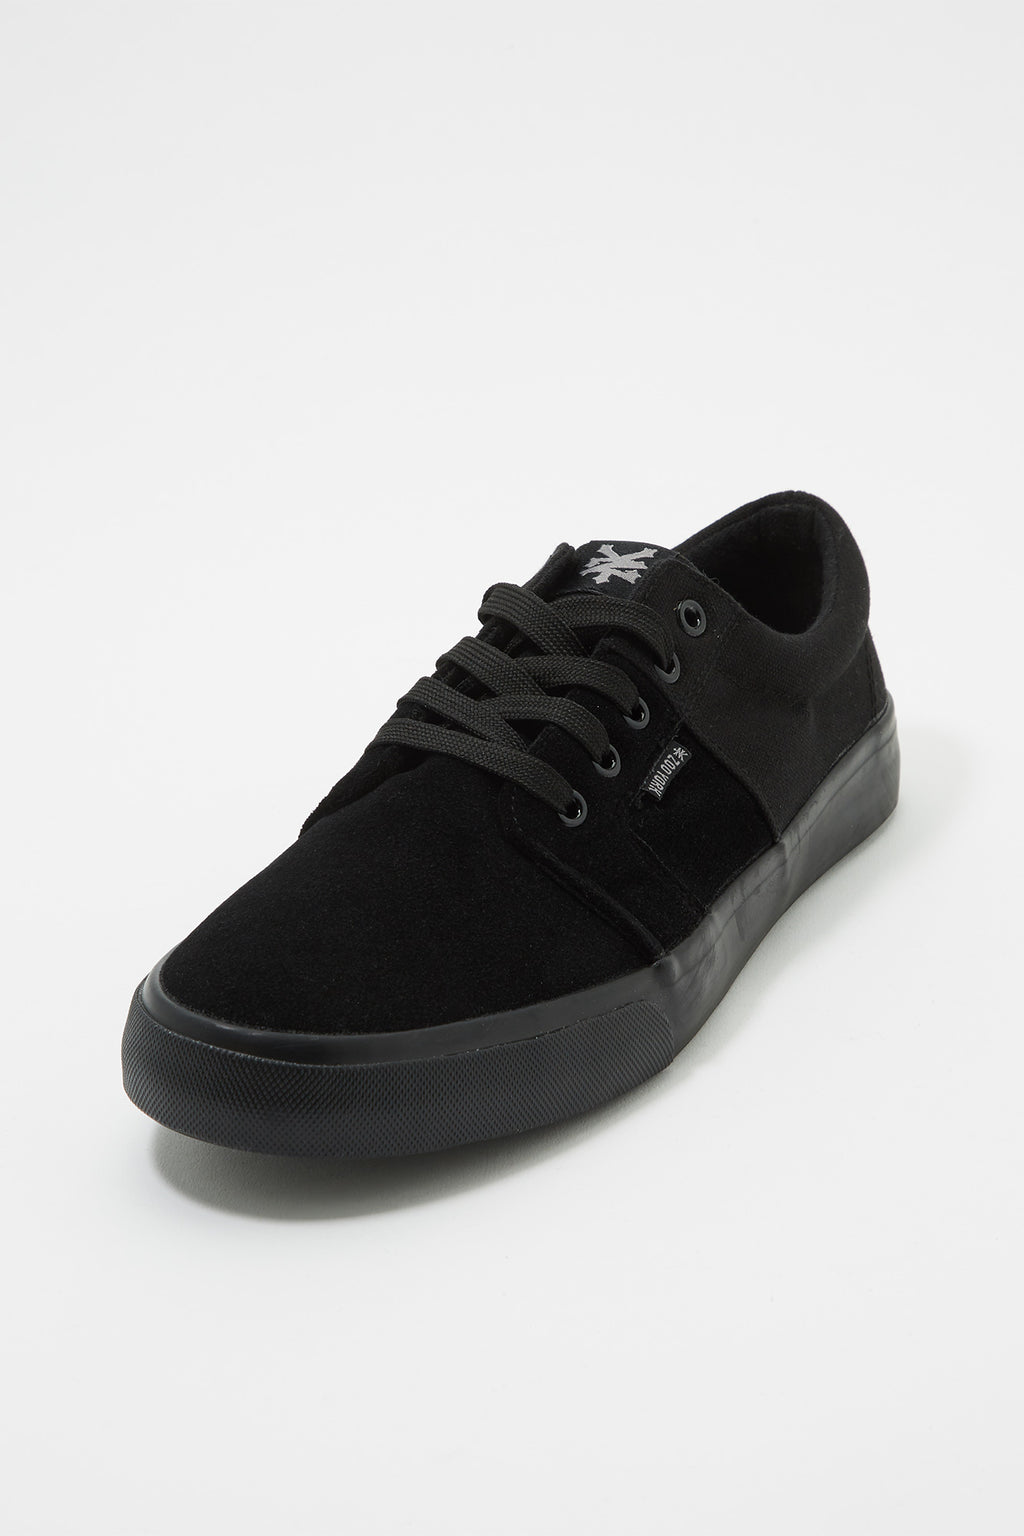 Zoo York Boys All Black Stack Lace-Up Canvas Shoes